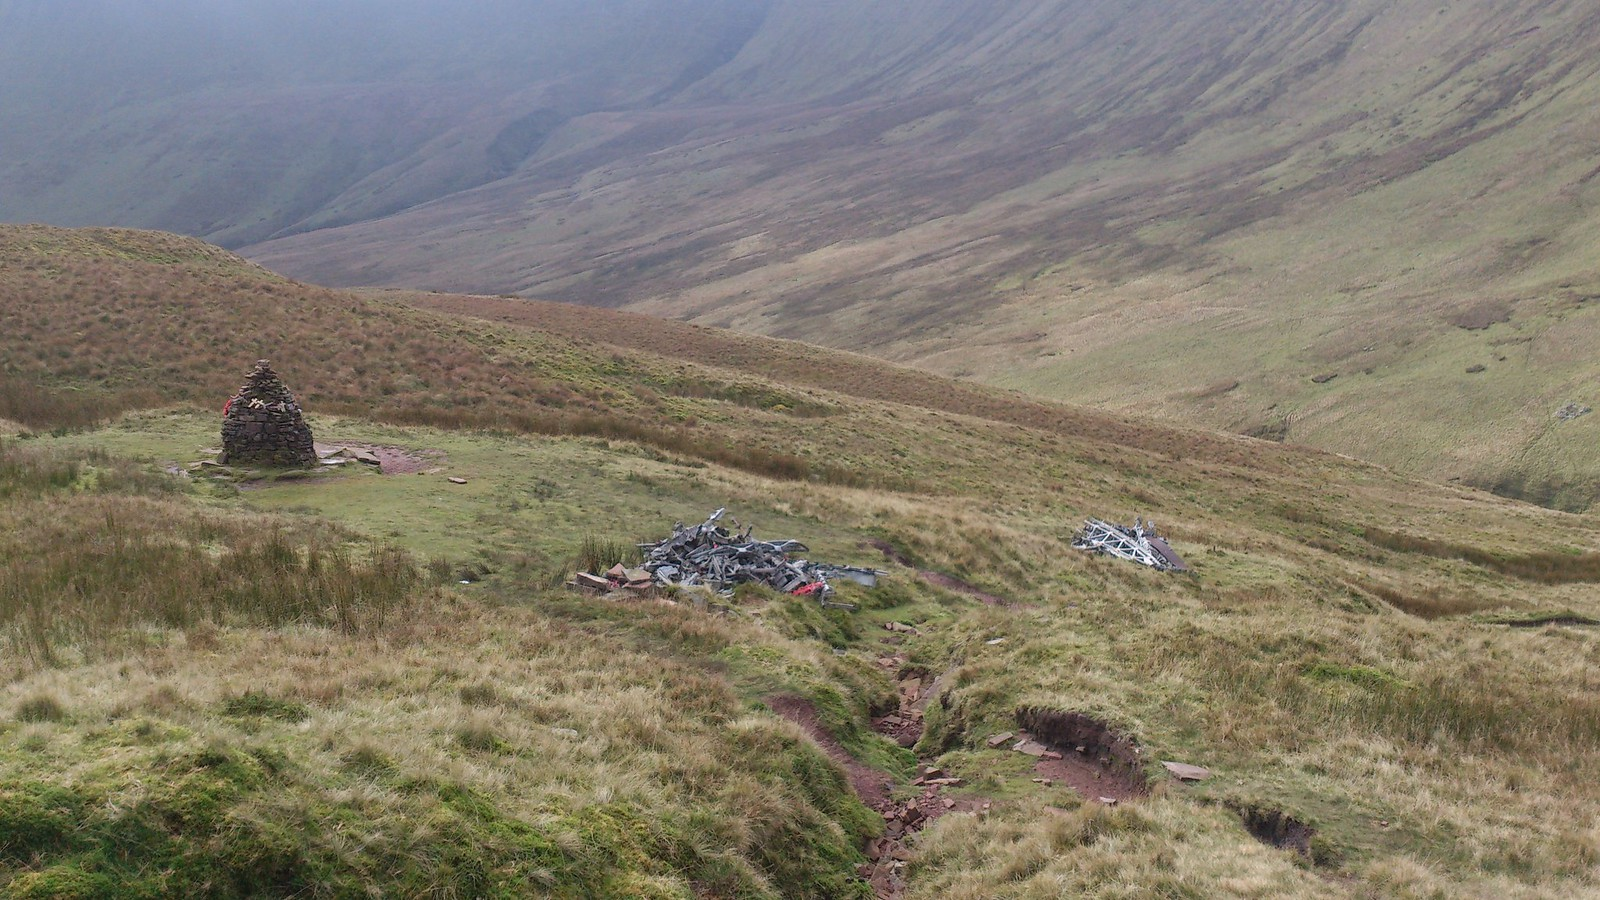 WWII Memorial for five Canadian Aircrew, by the Cwar y Gigfran, with two heaps of aircraft debris SWC Walk 278 Breacon Beacons Horseshoe - Bannau Brycheiniog (Extension to Waun Rydd)